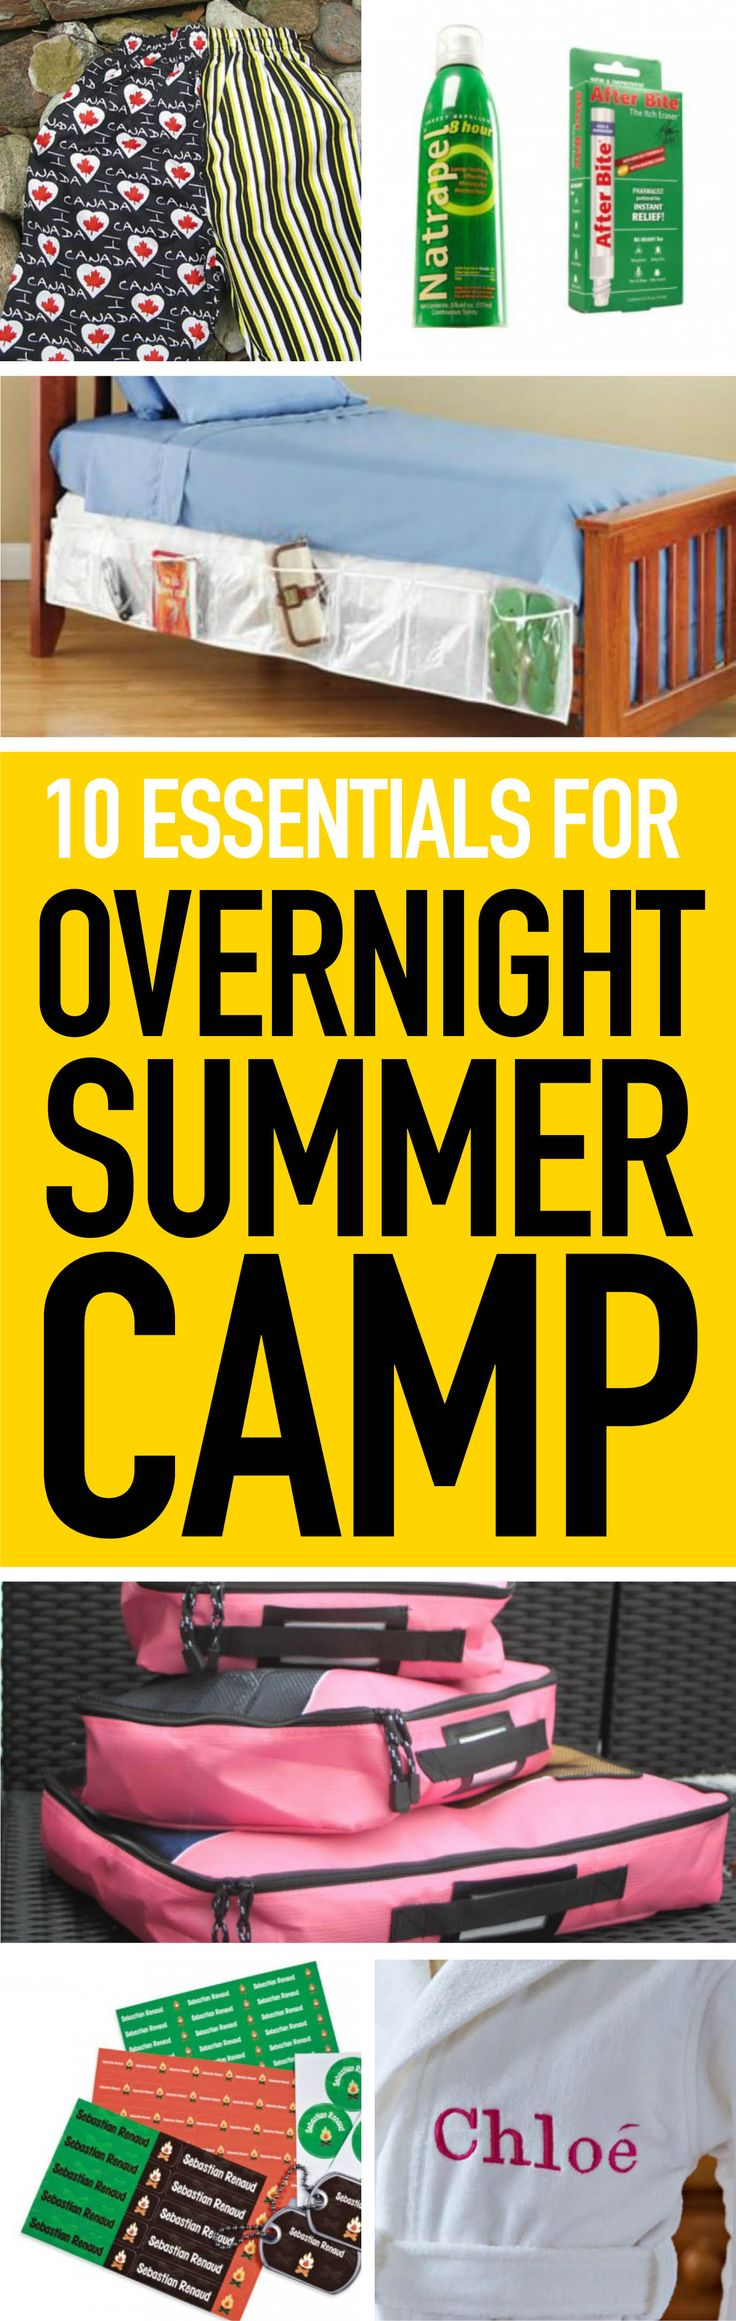 If your kid is heading to overnight camp, don't forget to pack these so they have an extra-fun (and bug bite-free) experience!